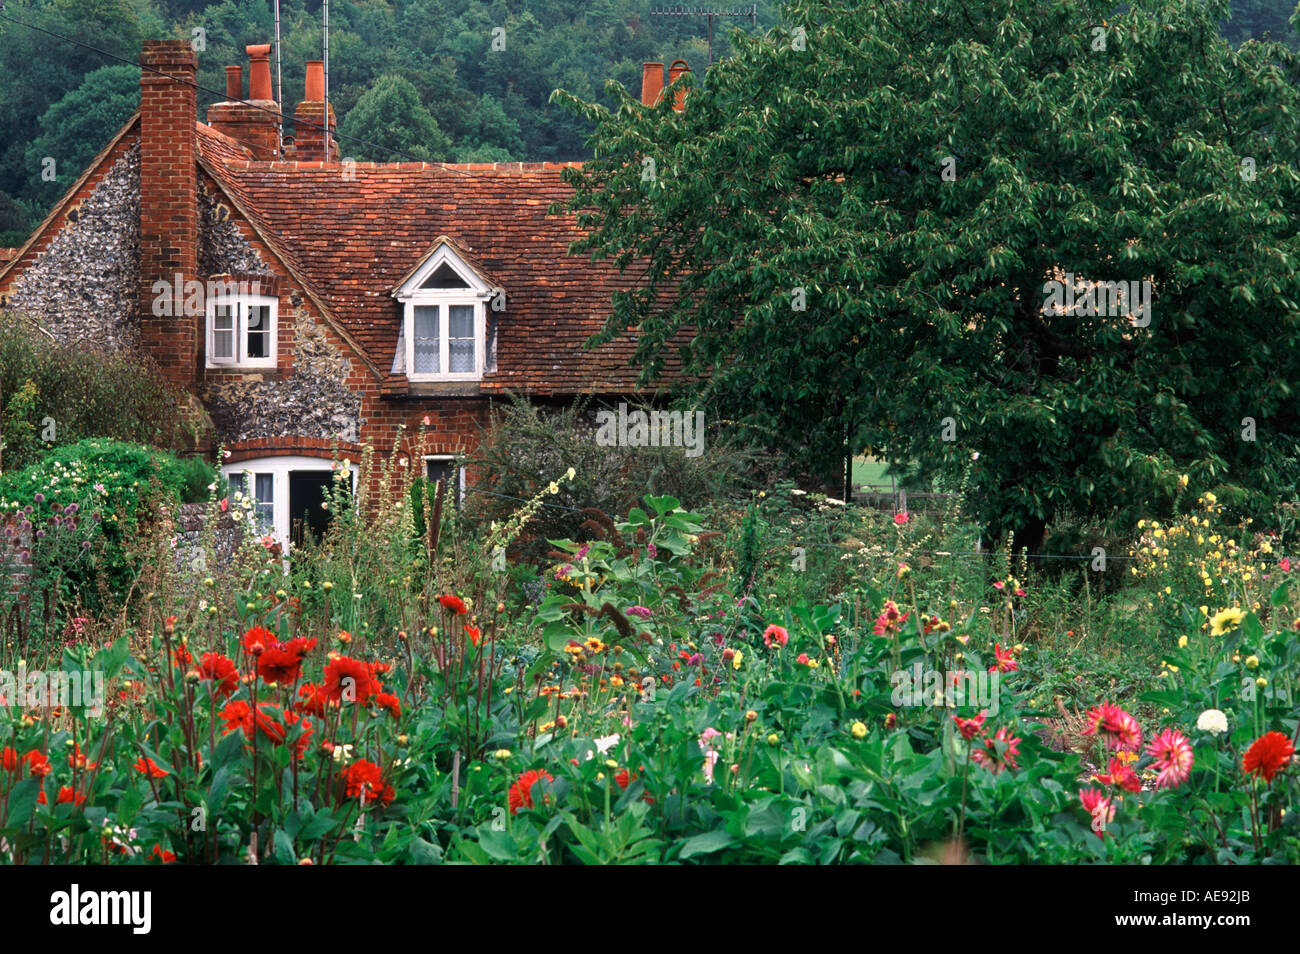 Pretty flint and terracotta tiled cottage and classic English flower garden in village of Hambleden, Buckinghamshire, England - Stock Image